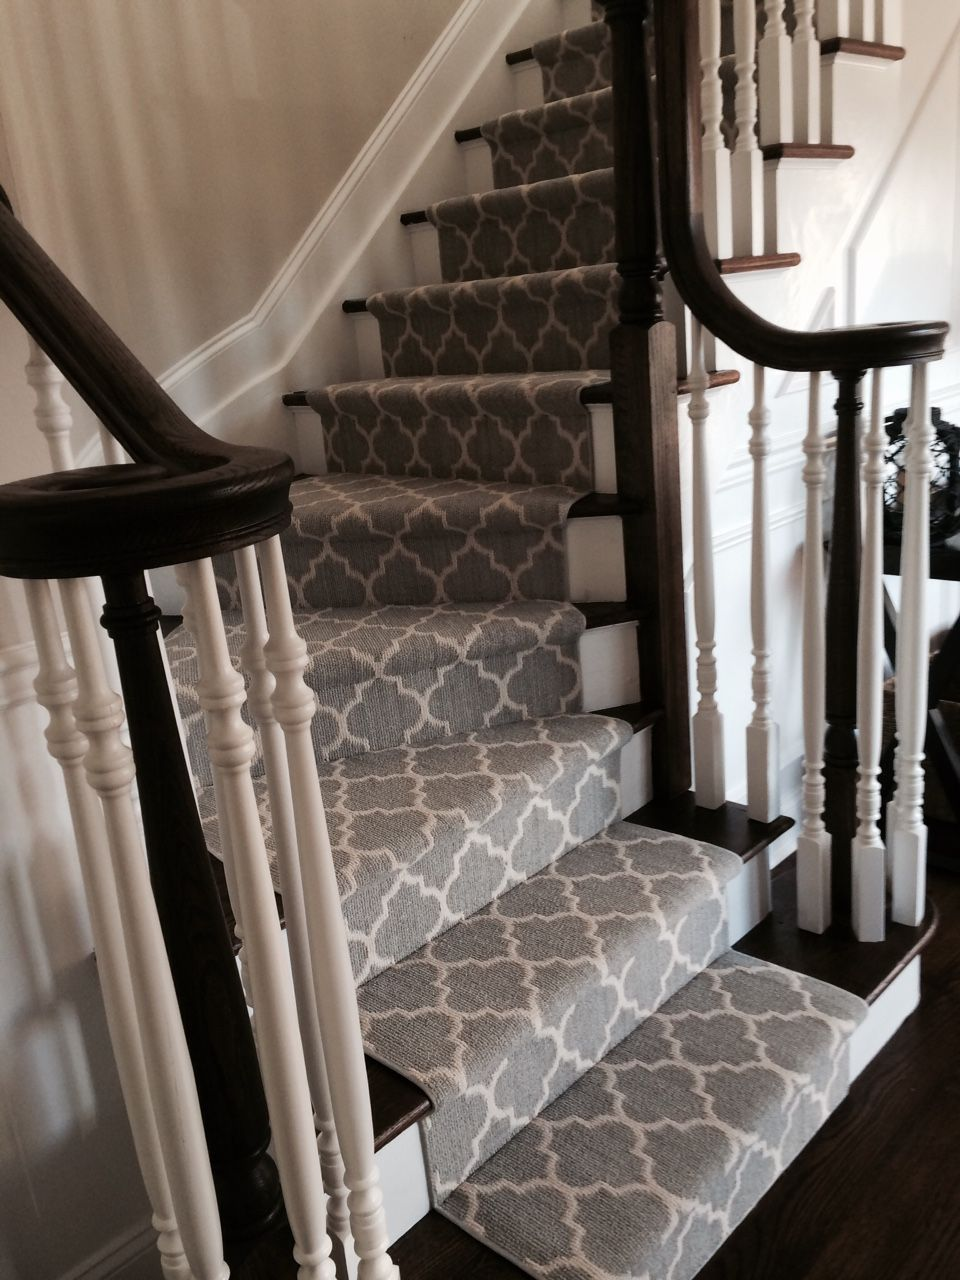 rugs on stairs make a statement on your stairs...with taza from tuftex - important to line CHTLHNR